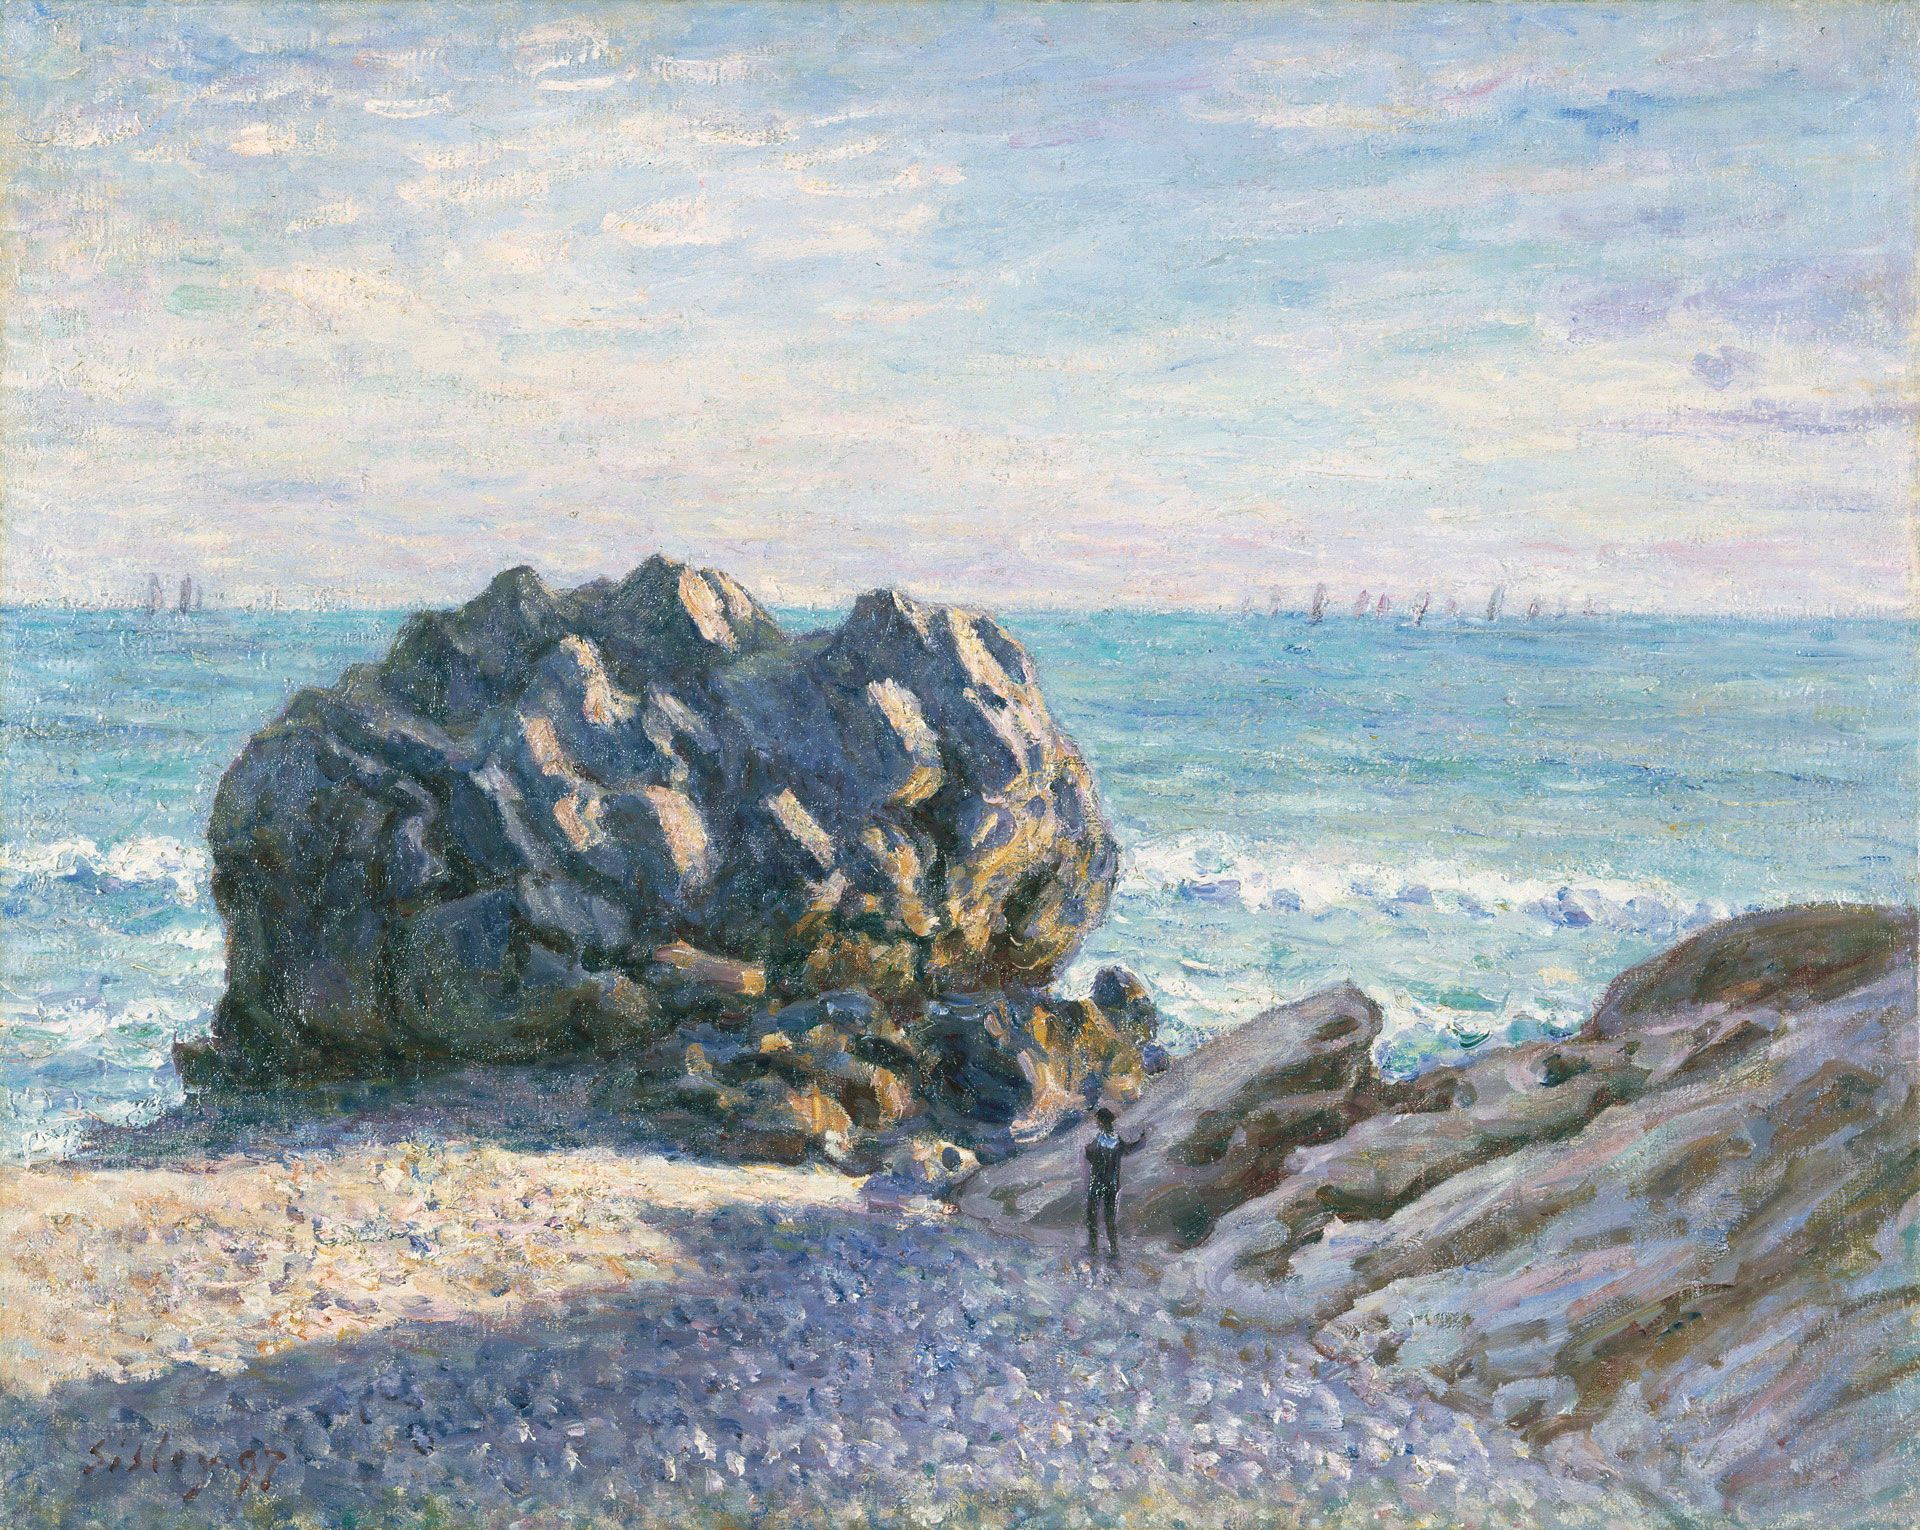 Sisley, Alfred. Storr Rock, Lady's Cove, le soir. (1897)